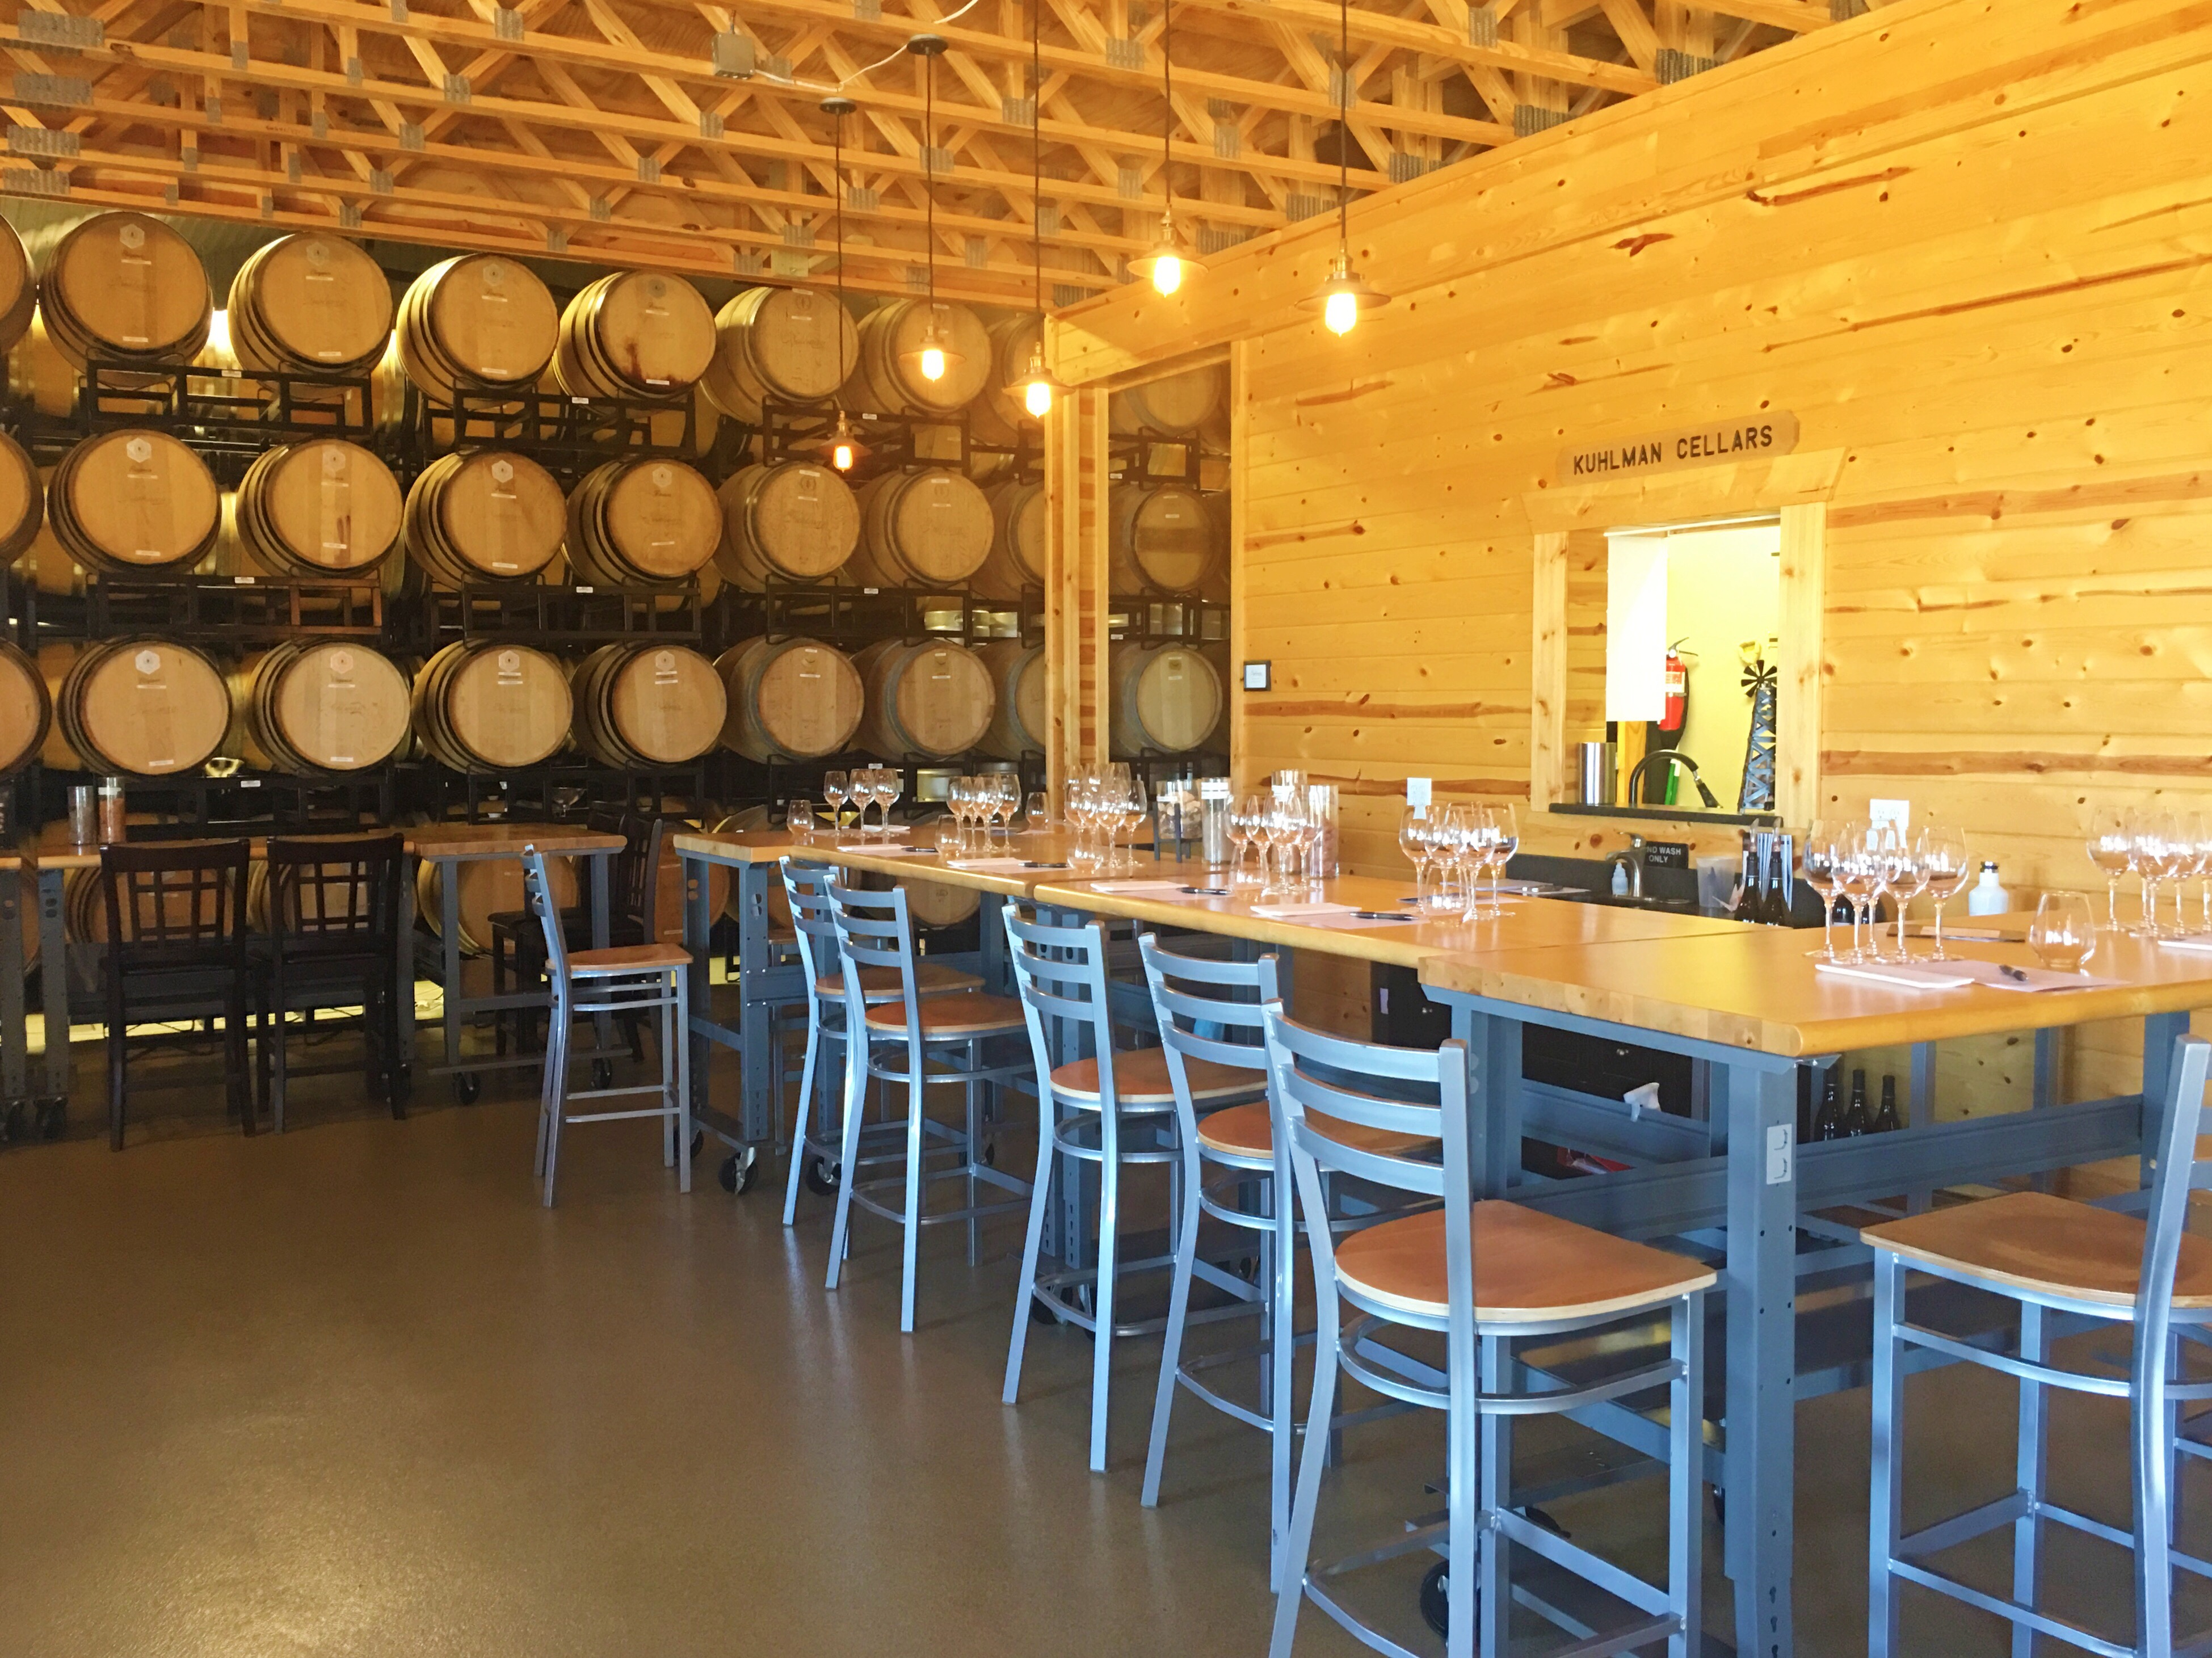 Kuhlman Cellars wine tasting room